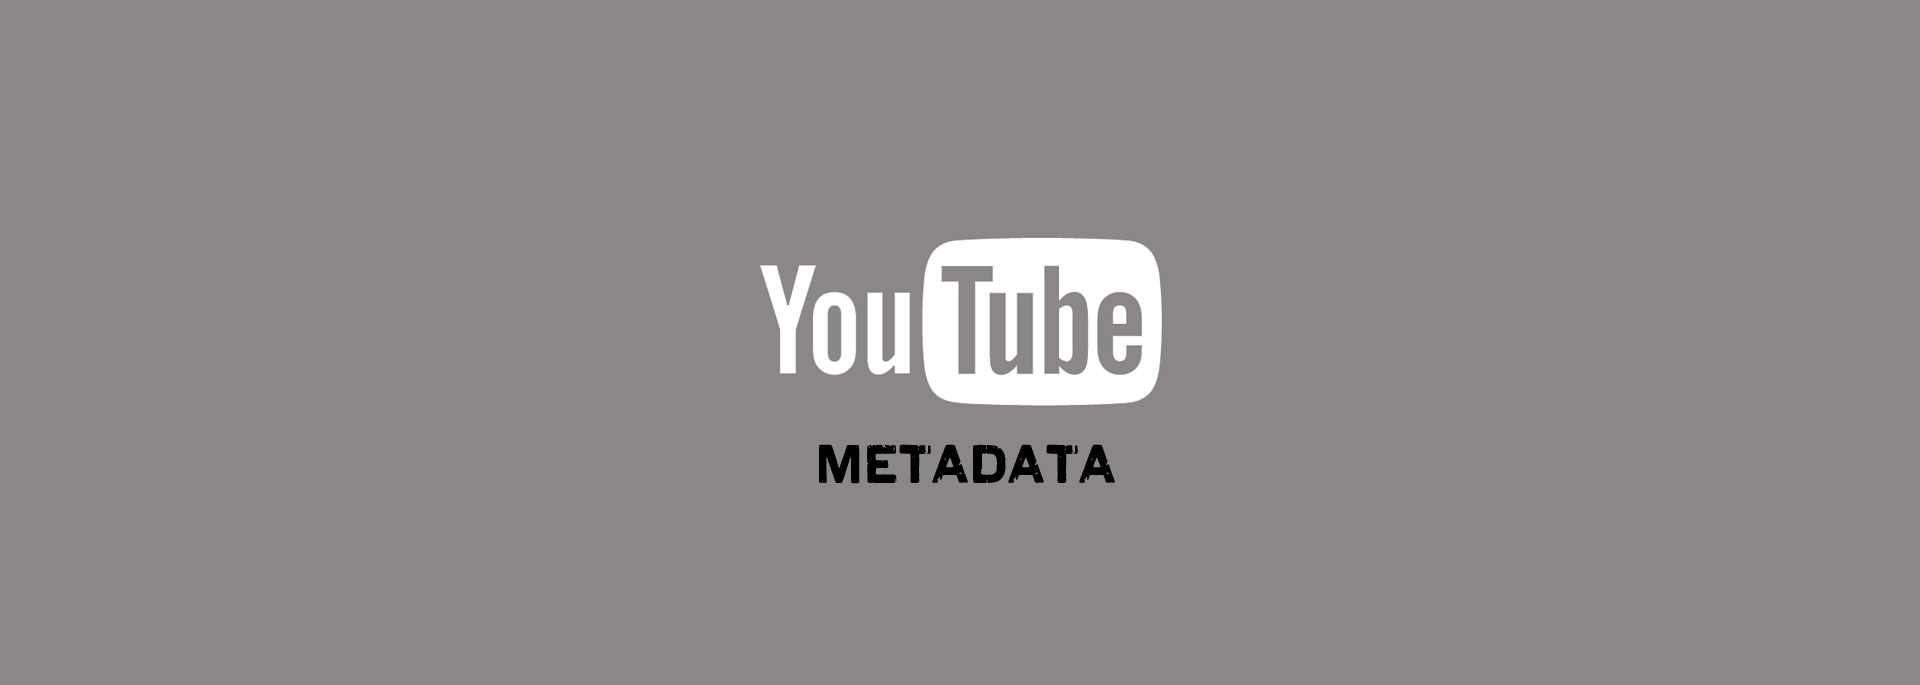 Grey graphic image with the words YouTube Metadata spelled out in impactful lettering